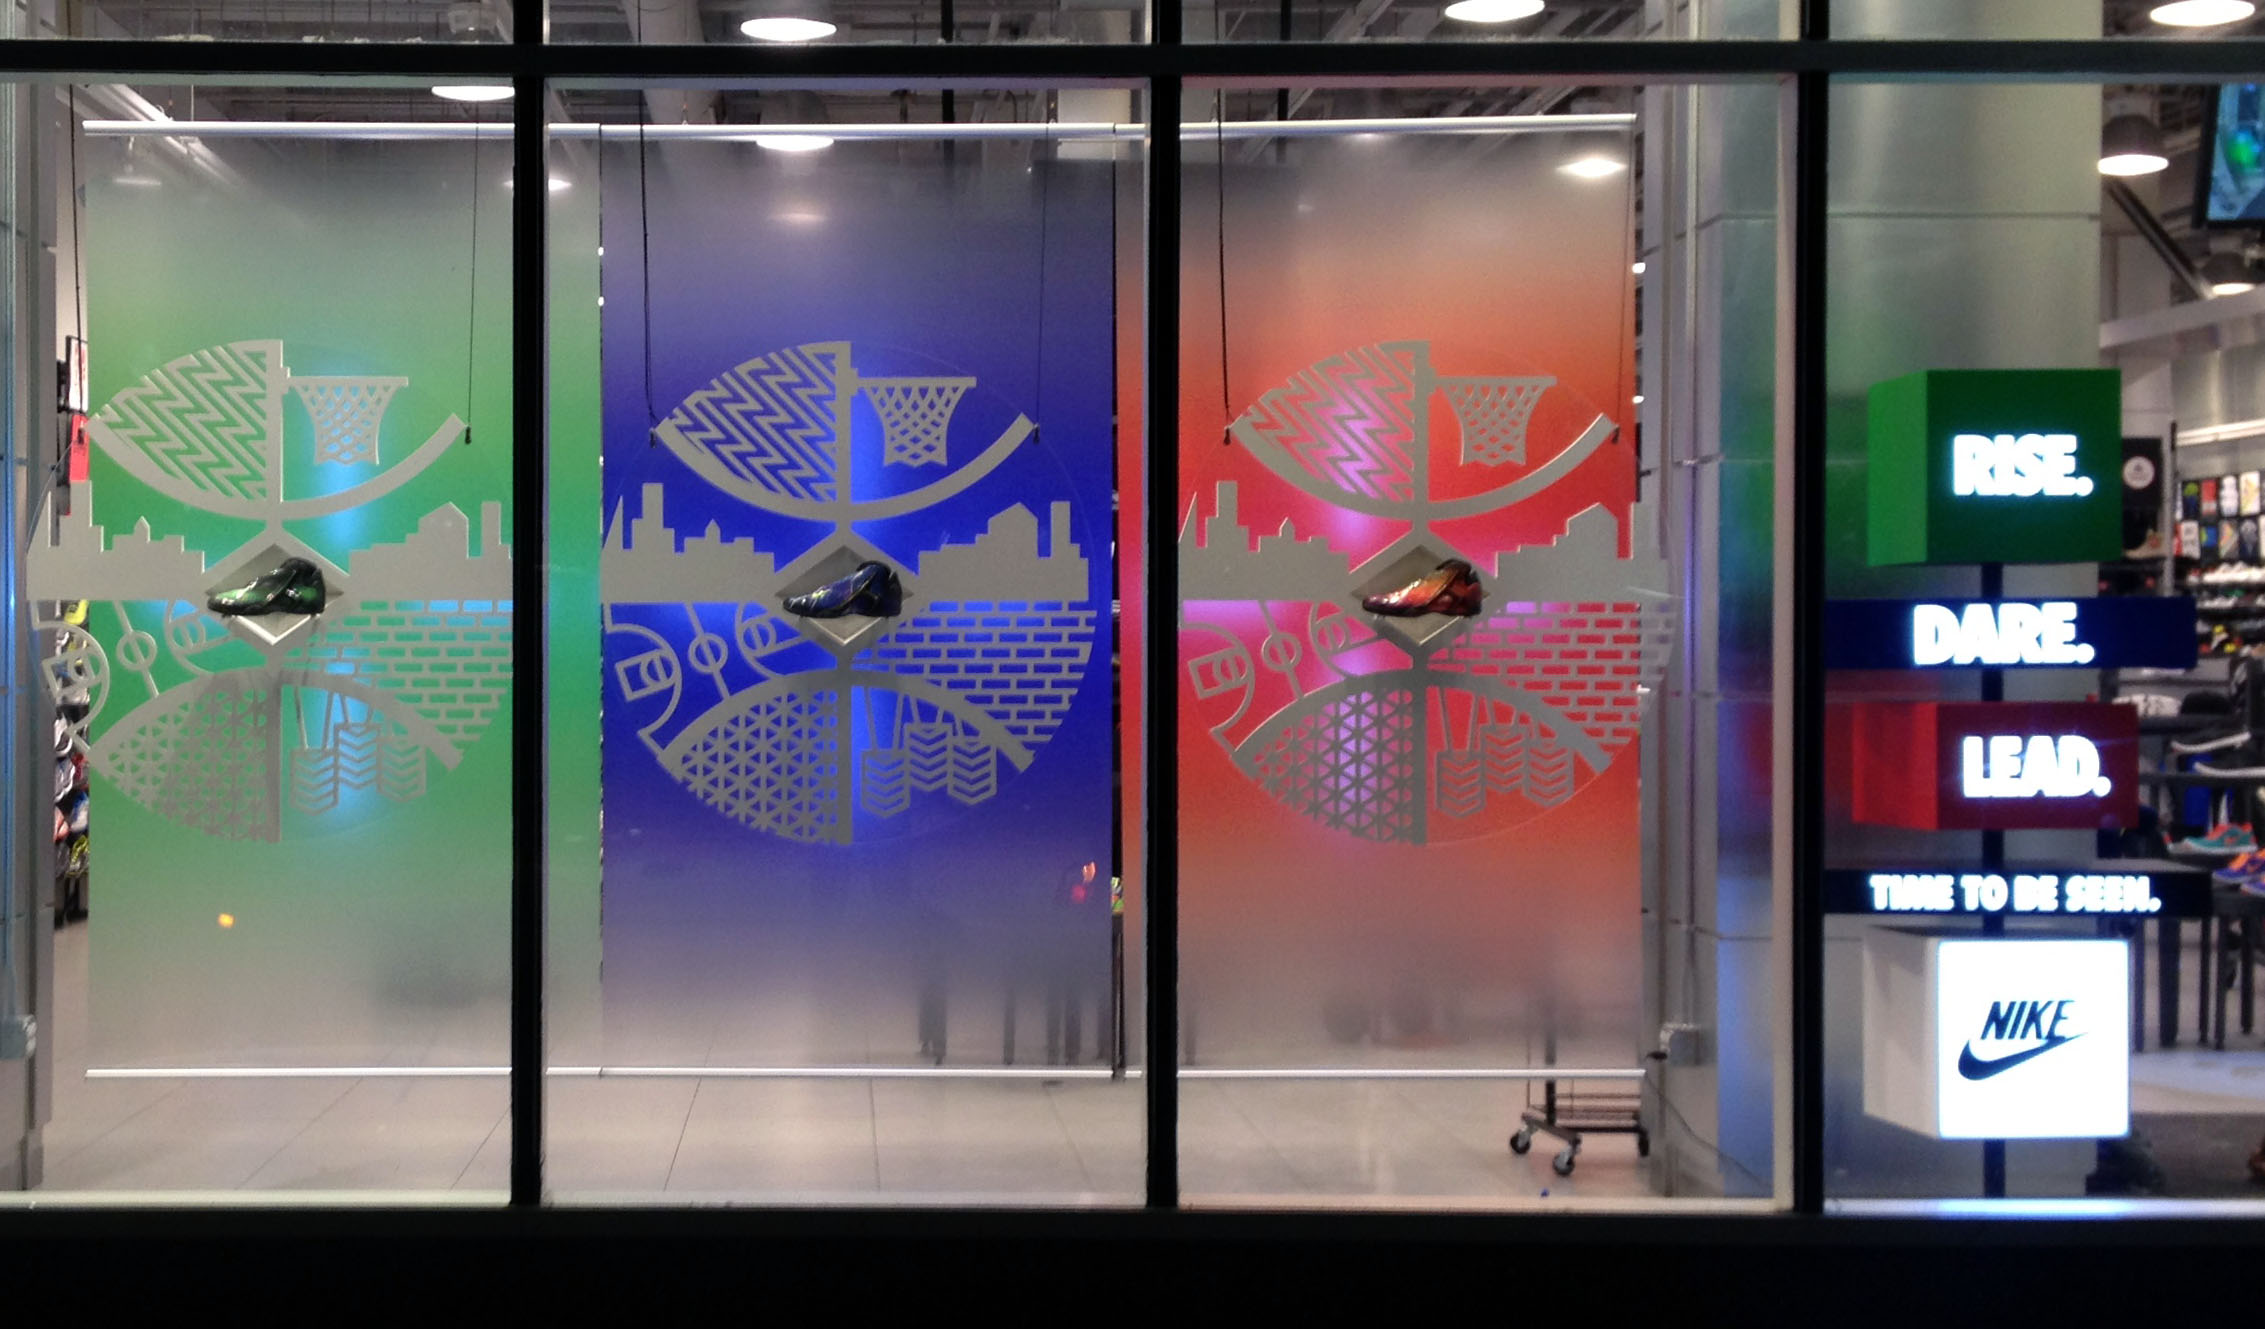 Nike Window Display Daedalus Design And Production Inc